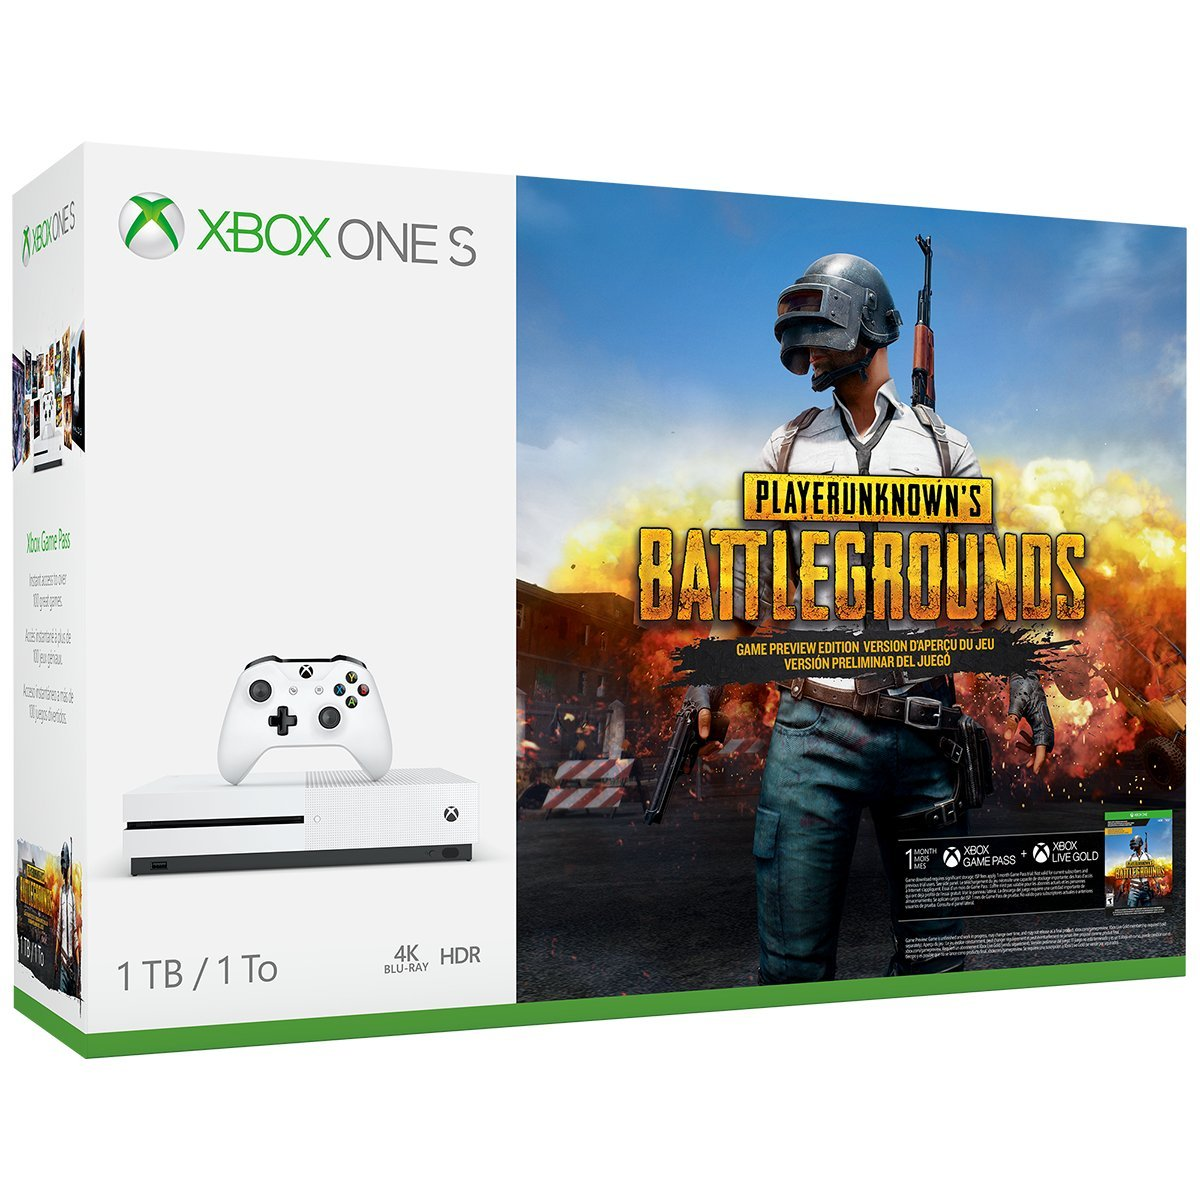 Xbox One S 1TB Console – PLAYERUNKNOWN'S BATTLEGROUNDS Bundle by Microsoft